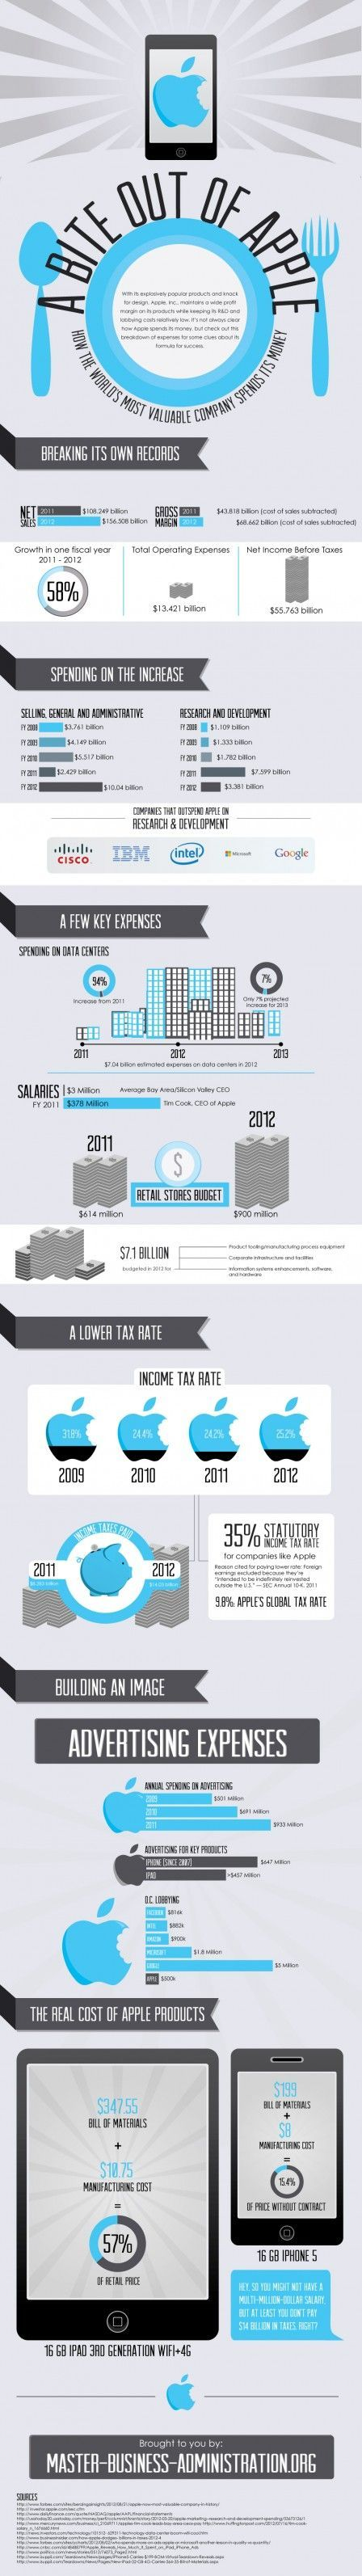 Infographie-depenses-apple